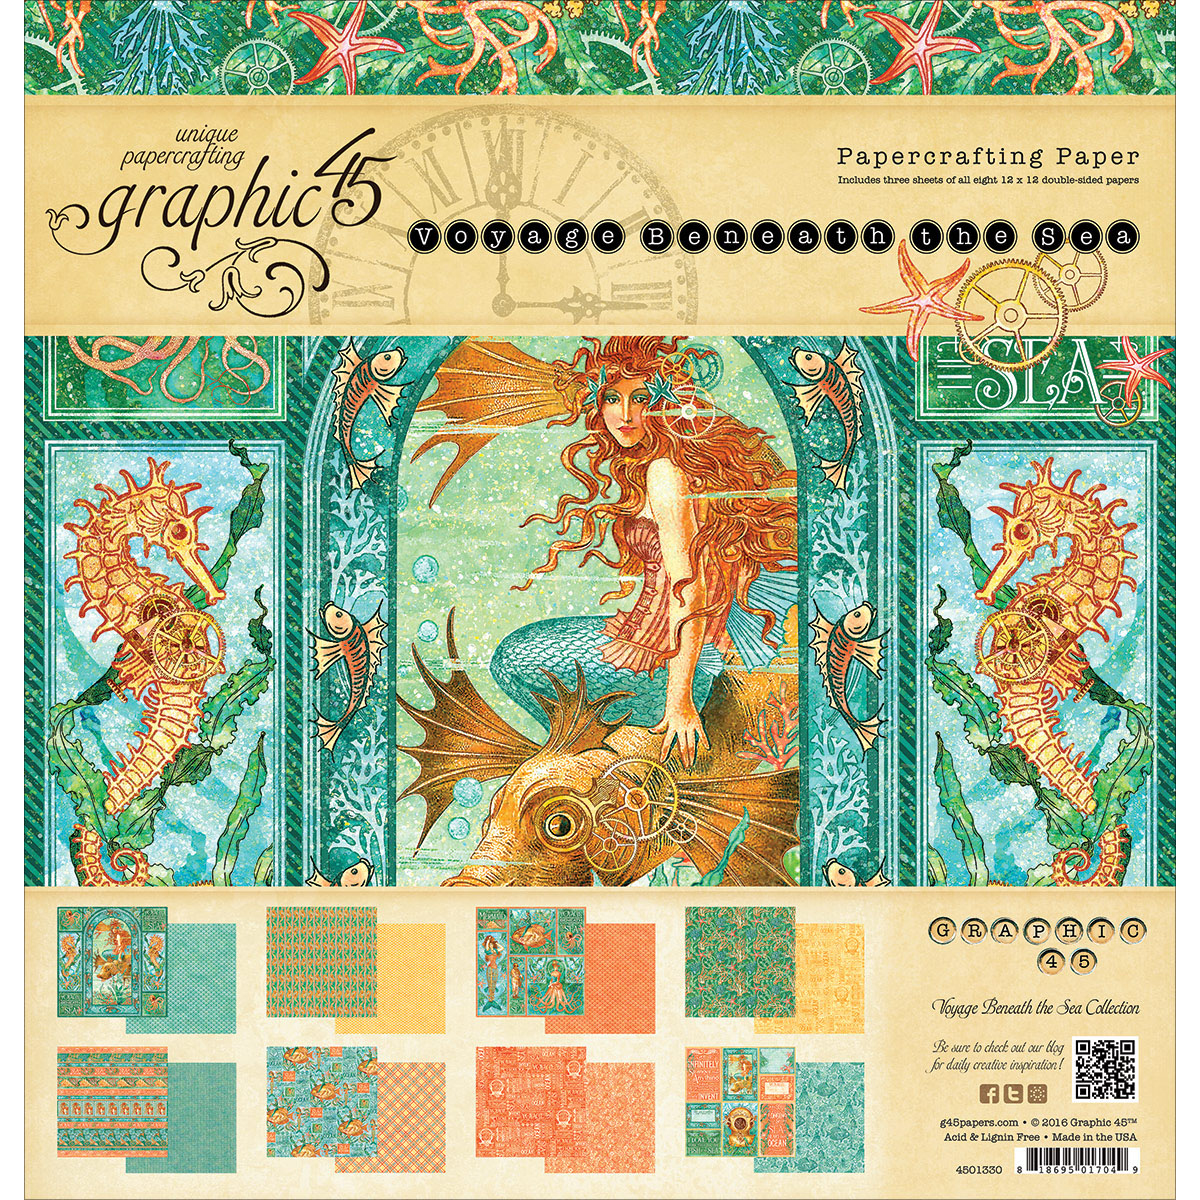 "Graphic 45 Double-Sided Paper Pad, 12"" x 12"", 24pk, Voyage Beneath The Sea, 8 Designs, 3 Each"